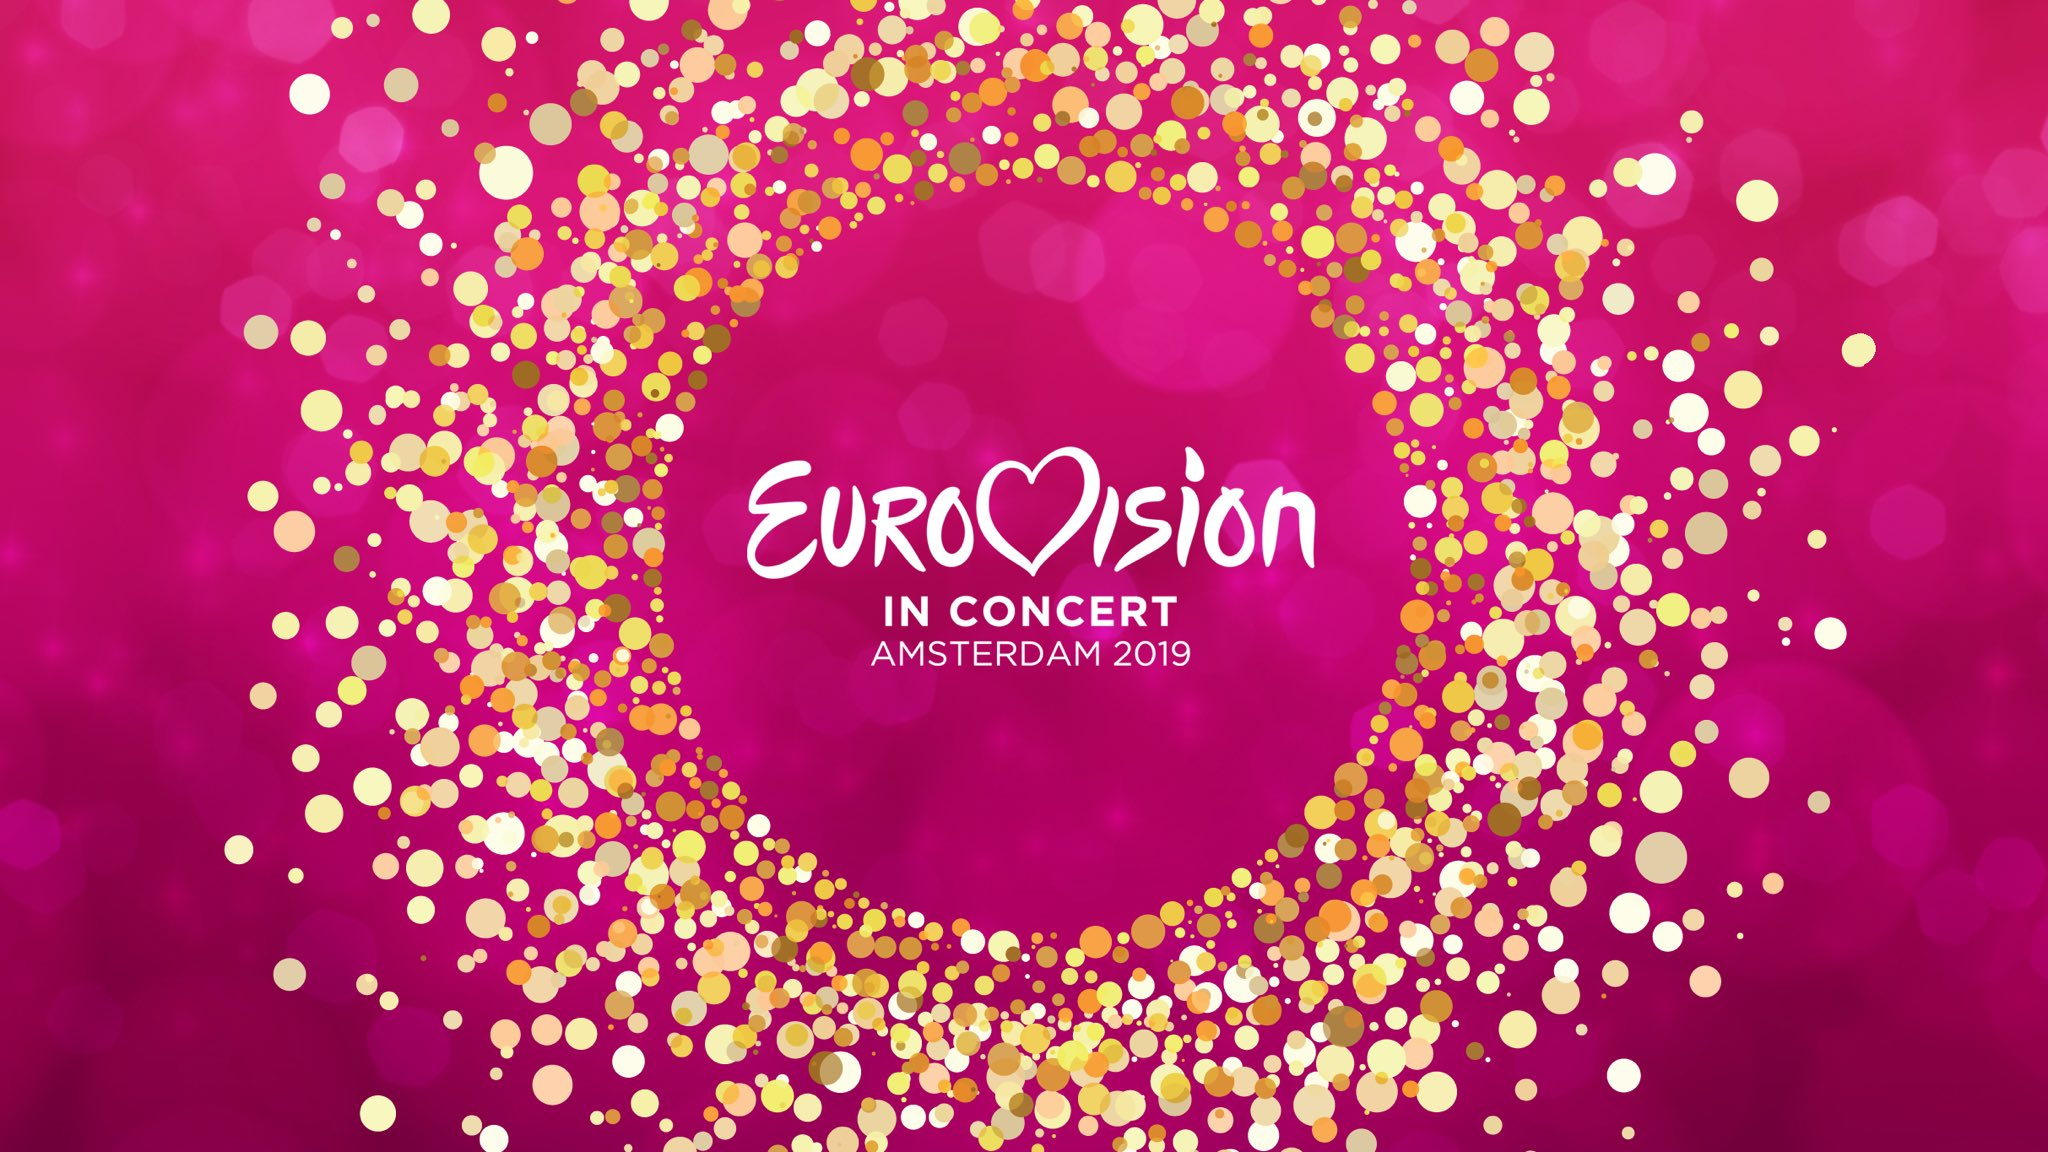 Eurovision in Concert Two more artists are confirmed ESCplus 2048x1152